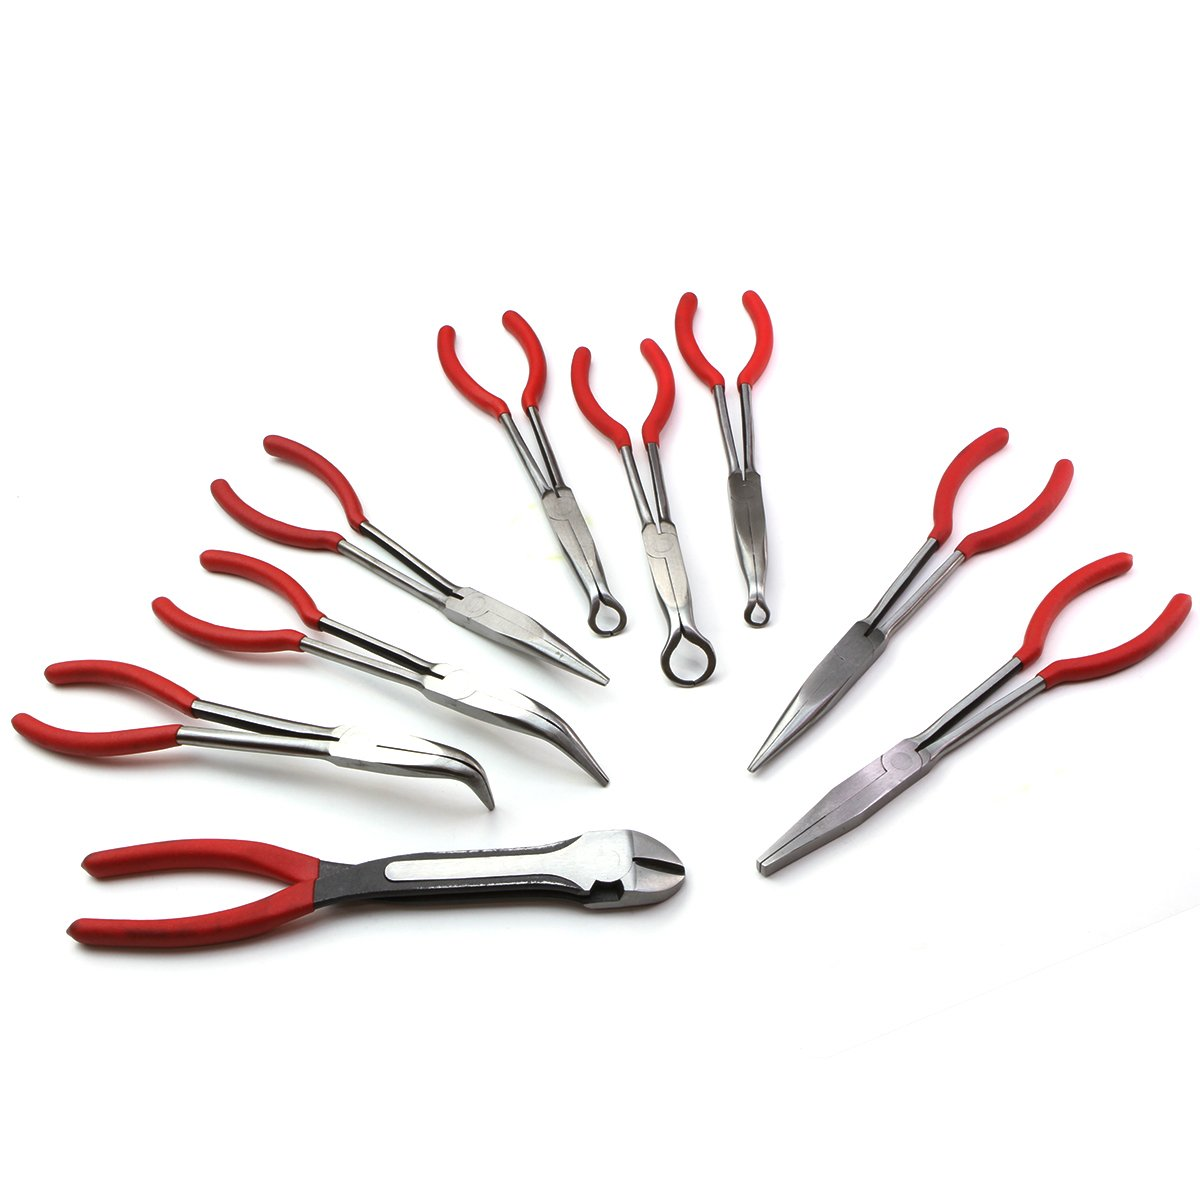 XtremepowerUS 9pc 11'' inch Long Reach Plier Mechanics Electricians Craft & Hobby Tool Set